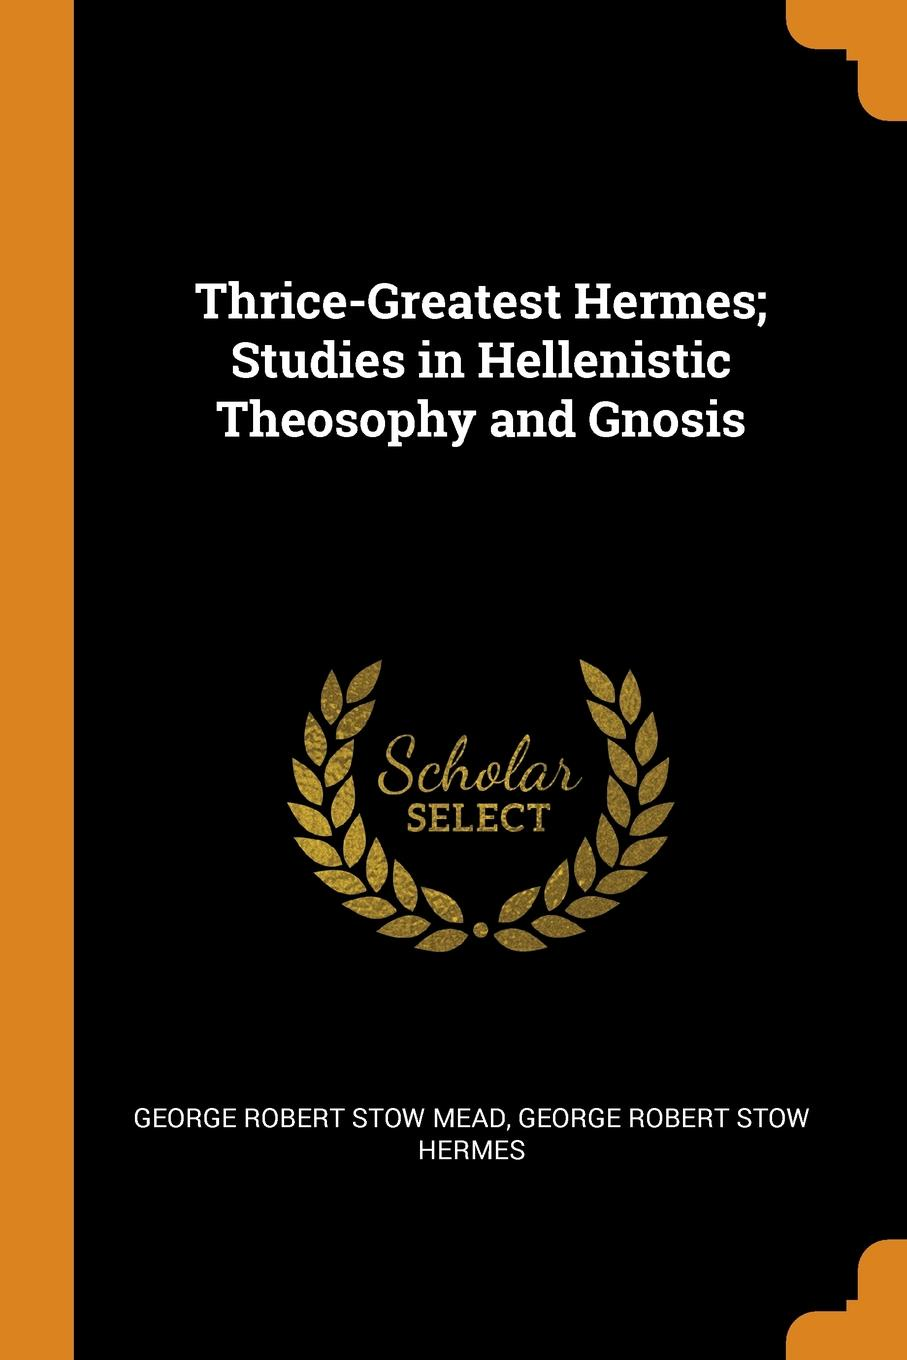 George Robert Stow Mead, George Robert Stow Hermes Thrice-Greatest Hermes; Studies in Hellenistic Theosophy and Gnosis